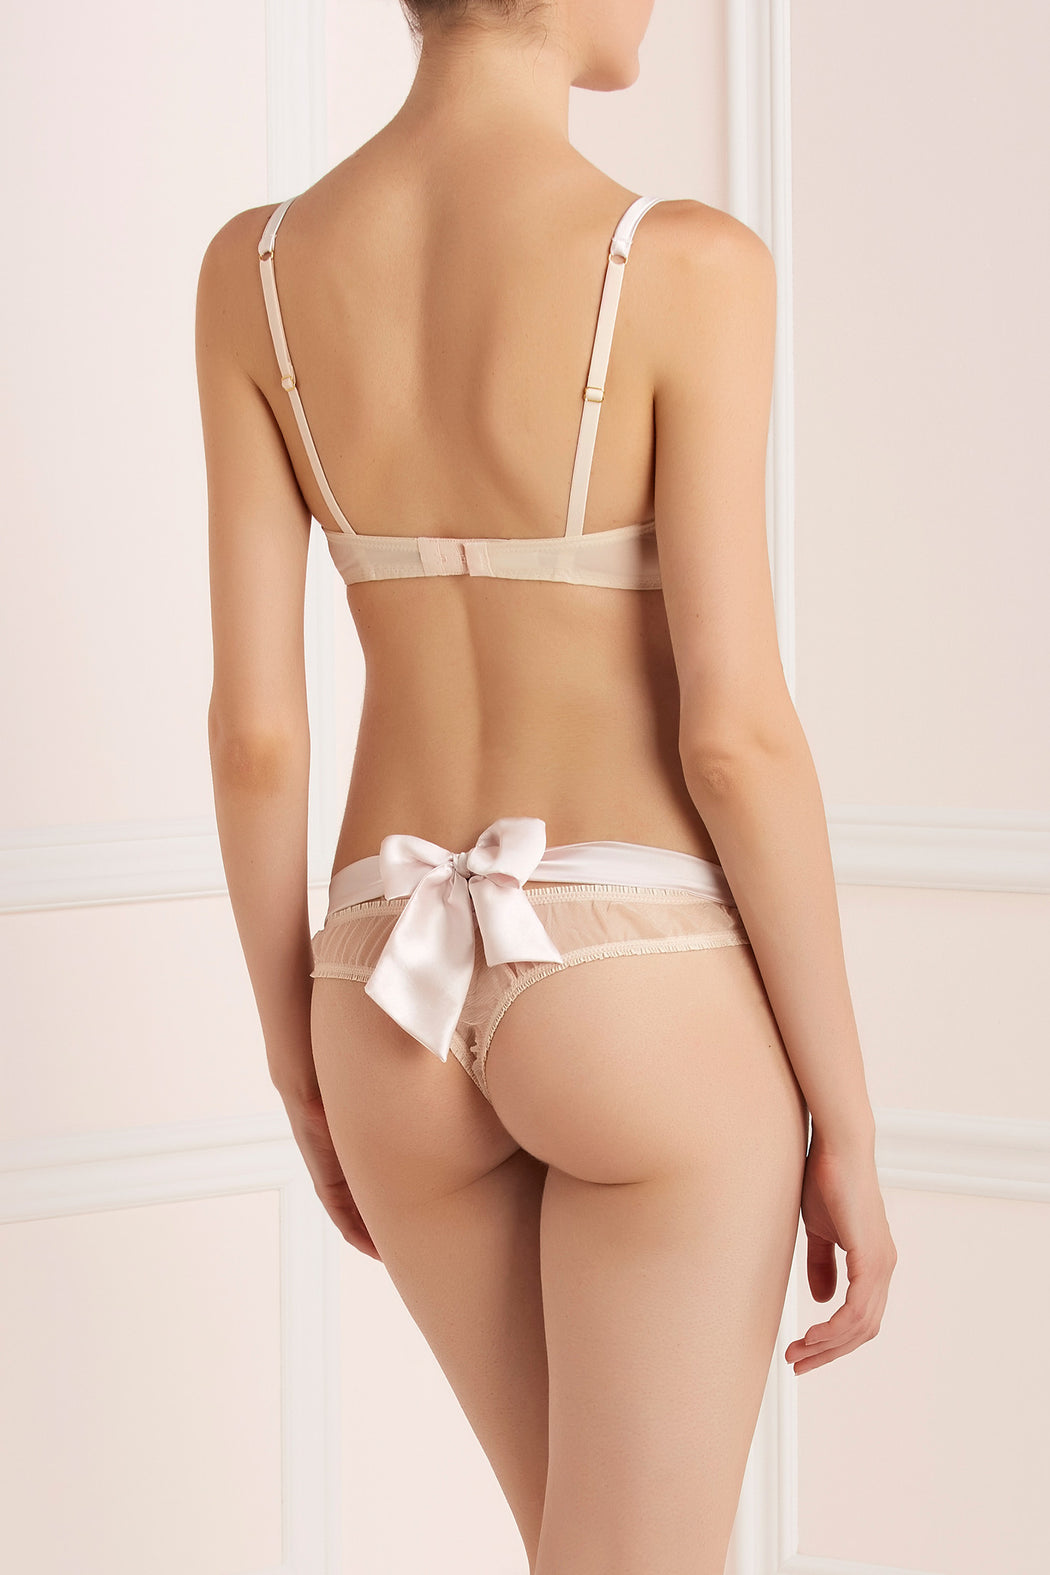 Sugar Pie silk and lace bow thong by Mimi Holliday workingirls lingerie